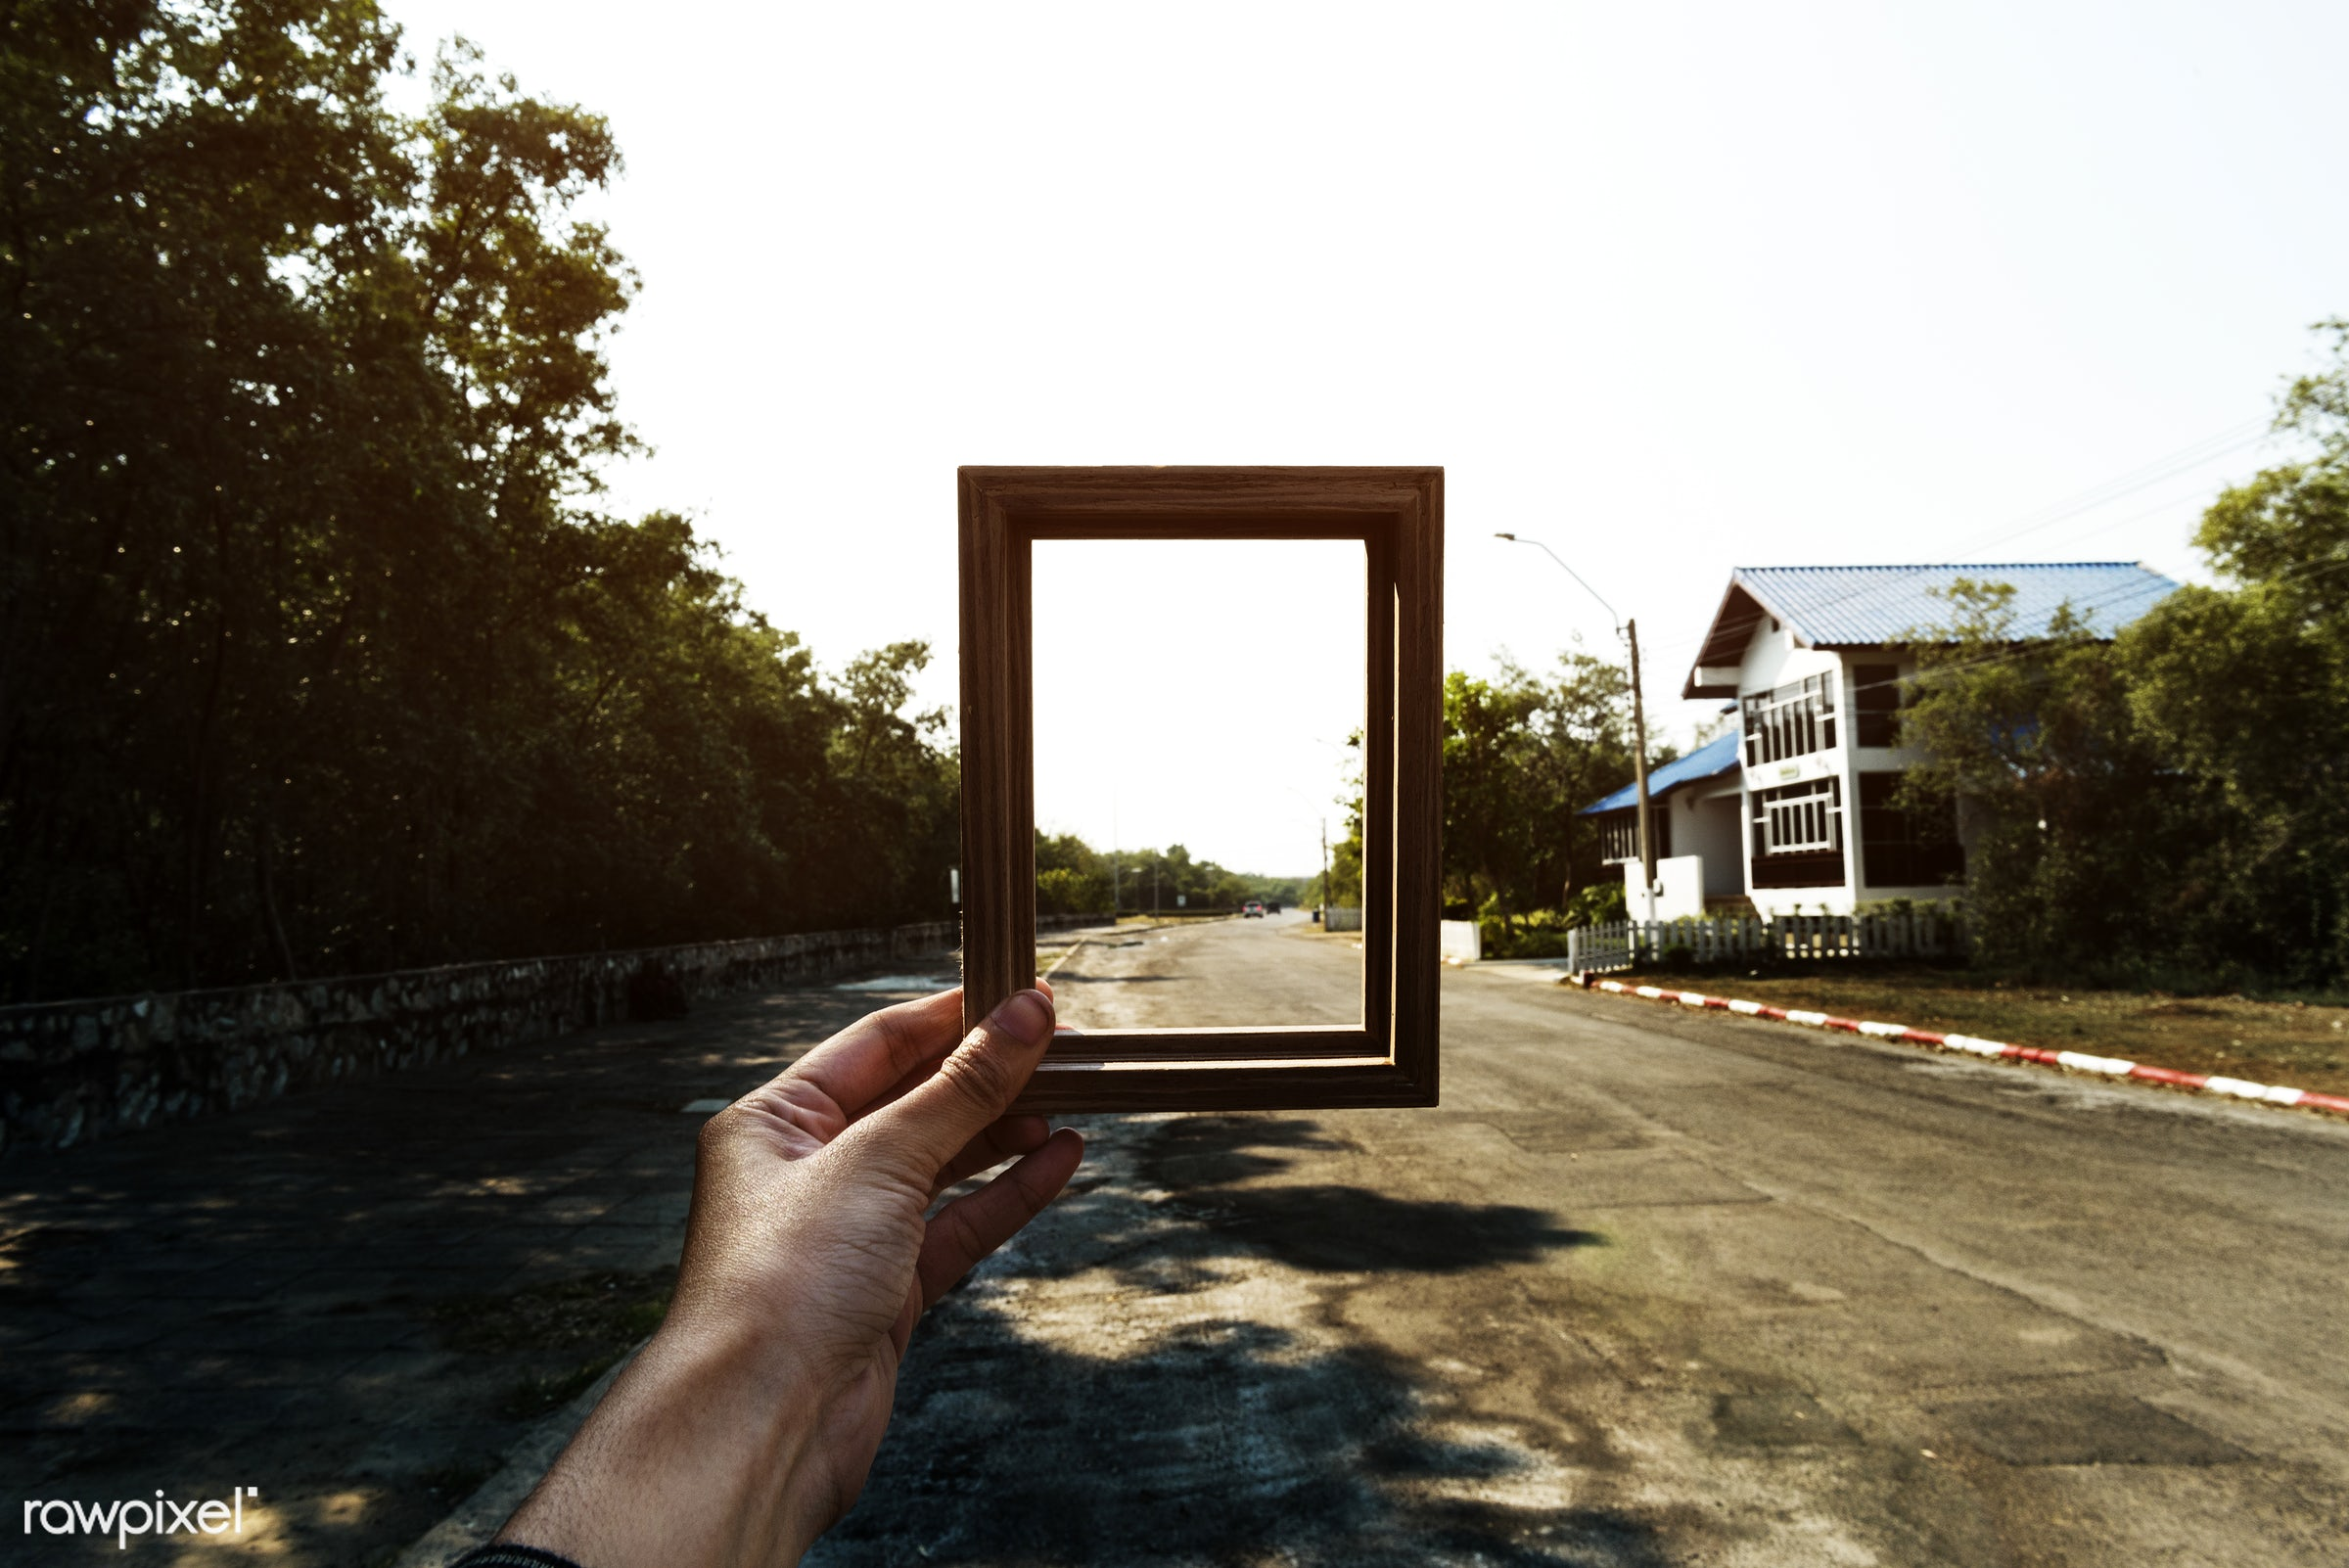 hand, holding, frame, empty, border, square, rectangle, shape, road, street, suburbs, outdoors